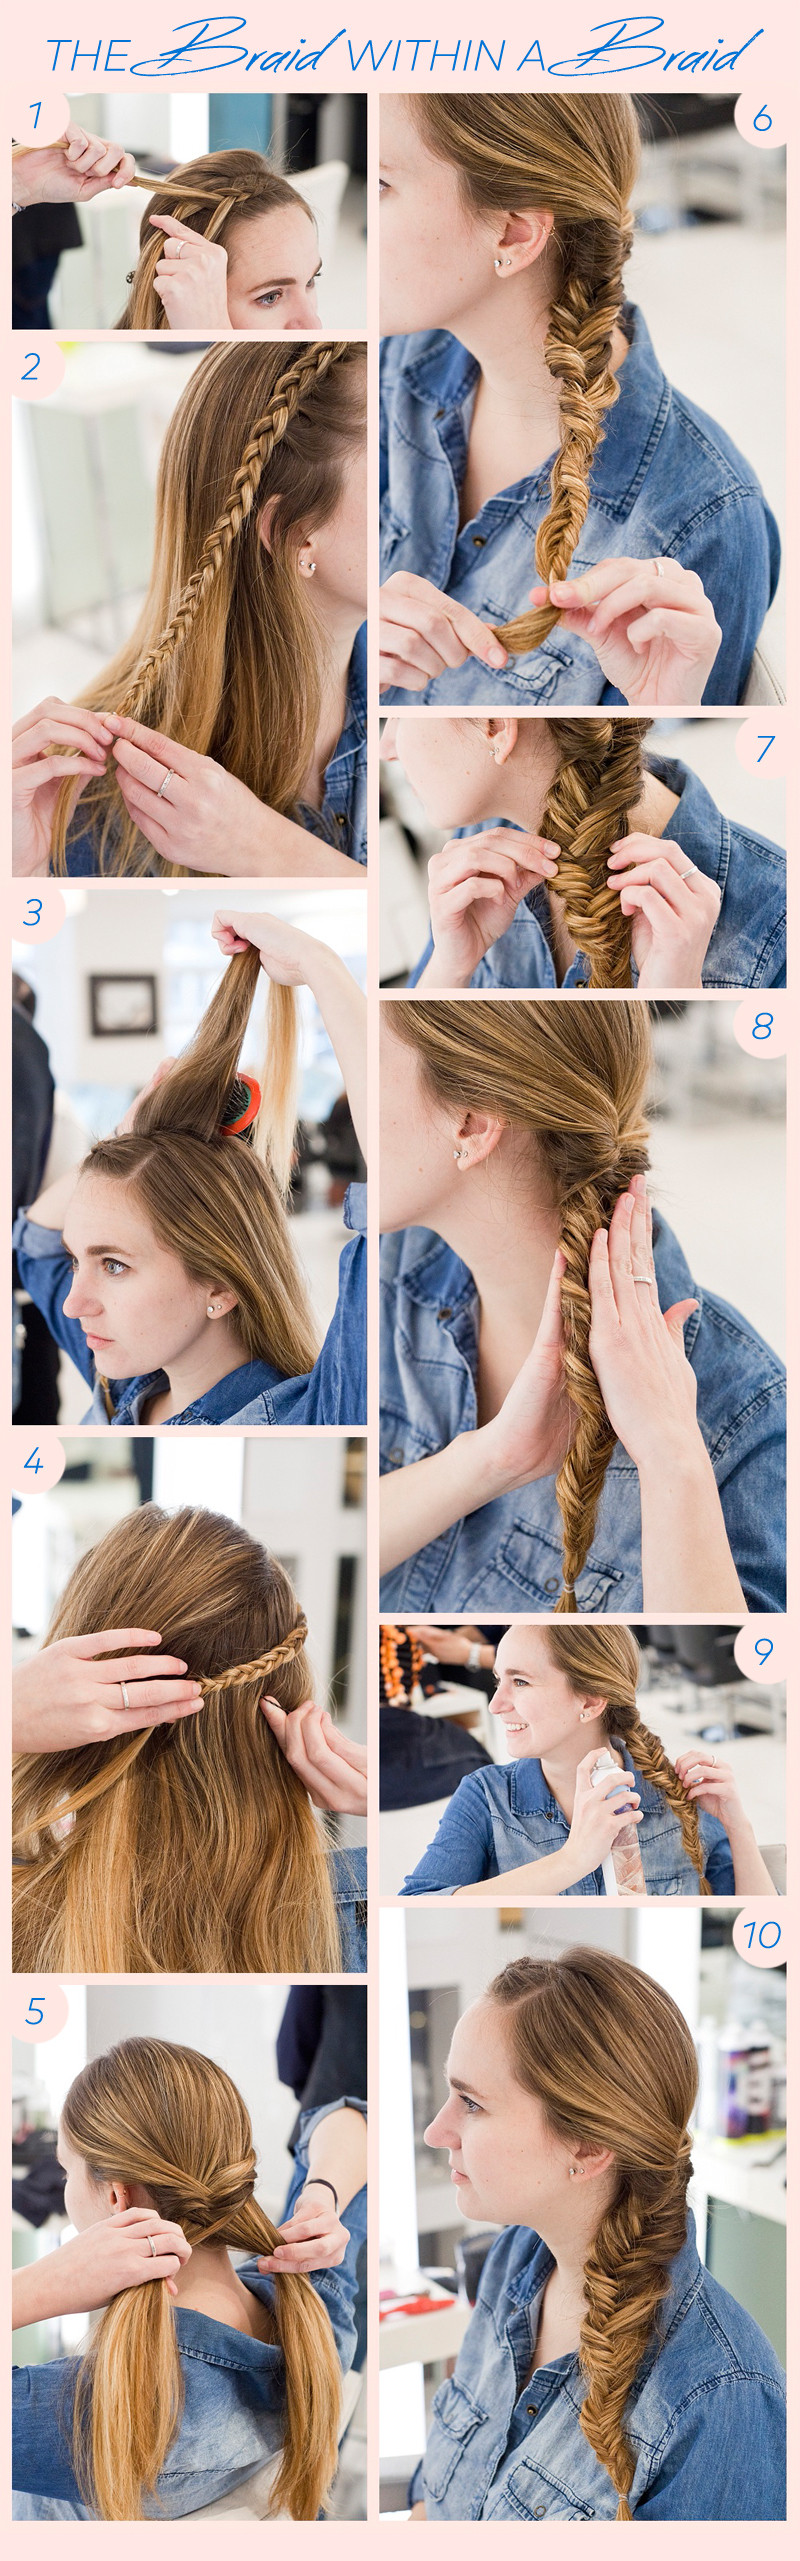 DIY This Braid Within a Braid For Festival Season